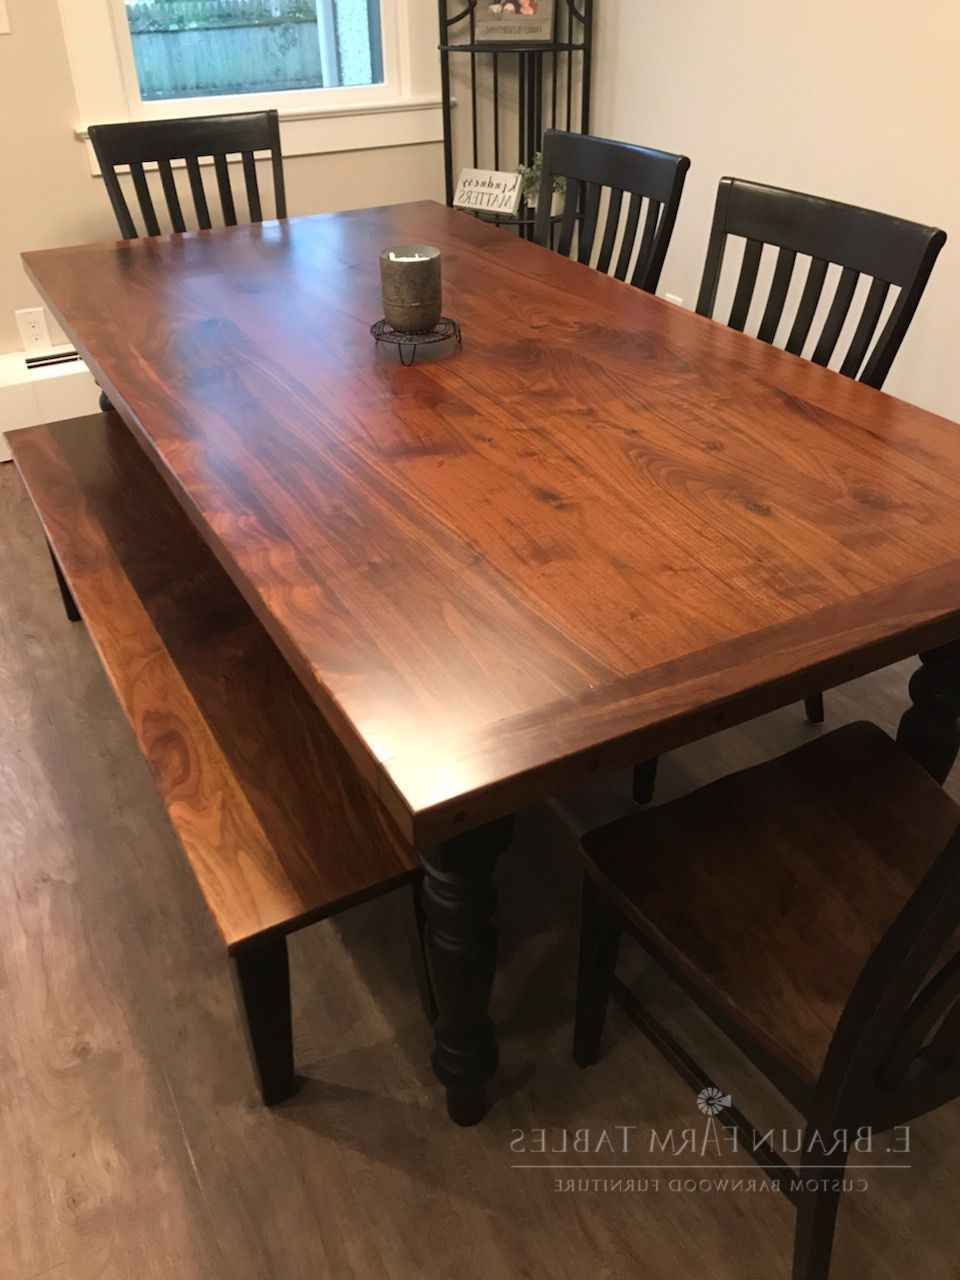 Custom Farmhouse Table – Gorgeous Black Walnut Table Top And Intended For Well Liked Distressed Walnut And Black Finish Wood Modern Country Dining Tables (View 5 of 30)